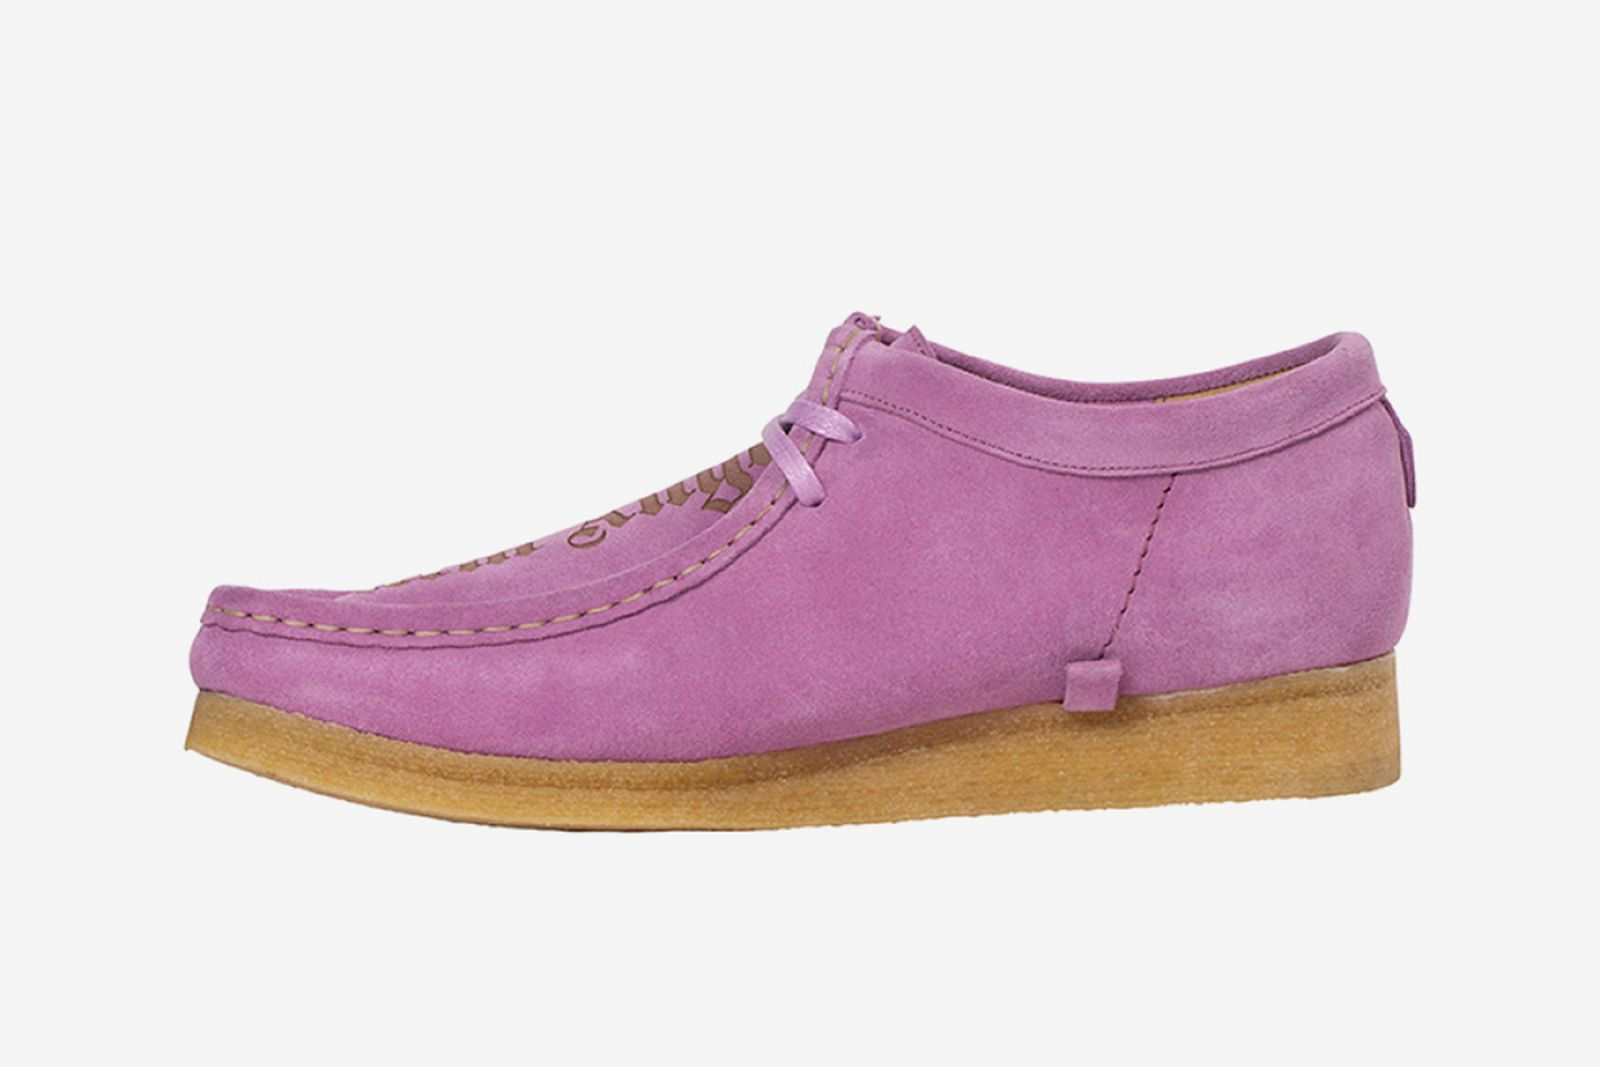 palm-angels-clarks-wallabee-release-date-price-1-06